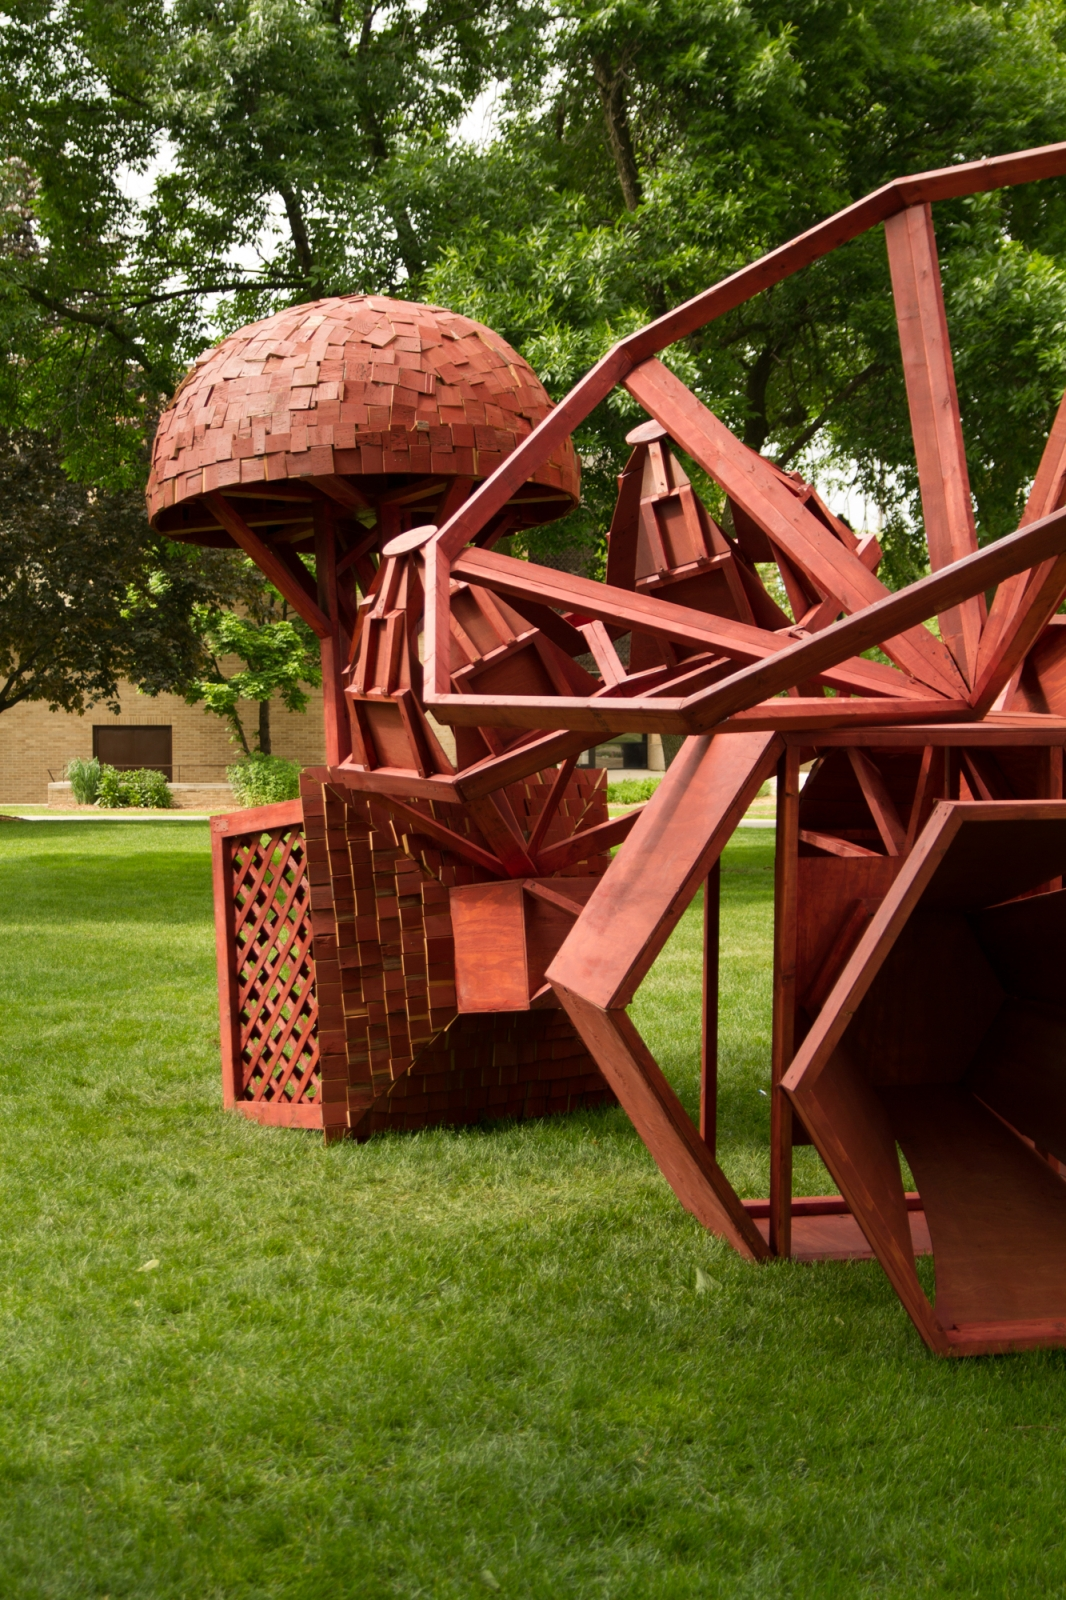 Kasia Ozga, Spring Loaded, 2015, Pine, Plywood, Cedar Barnwood, 19 ft. wide x 17 ft. across x 11 ft. high. Carroll University Community sculpture commission sponsored by the Greater Milwaukee Foundation's Mary L. Nohl Fund